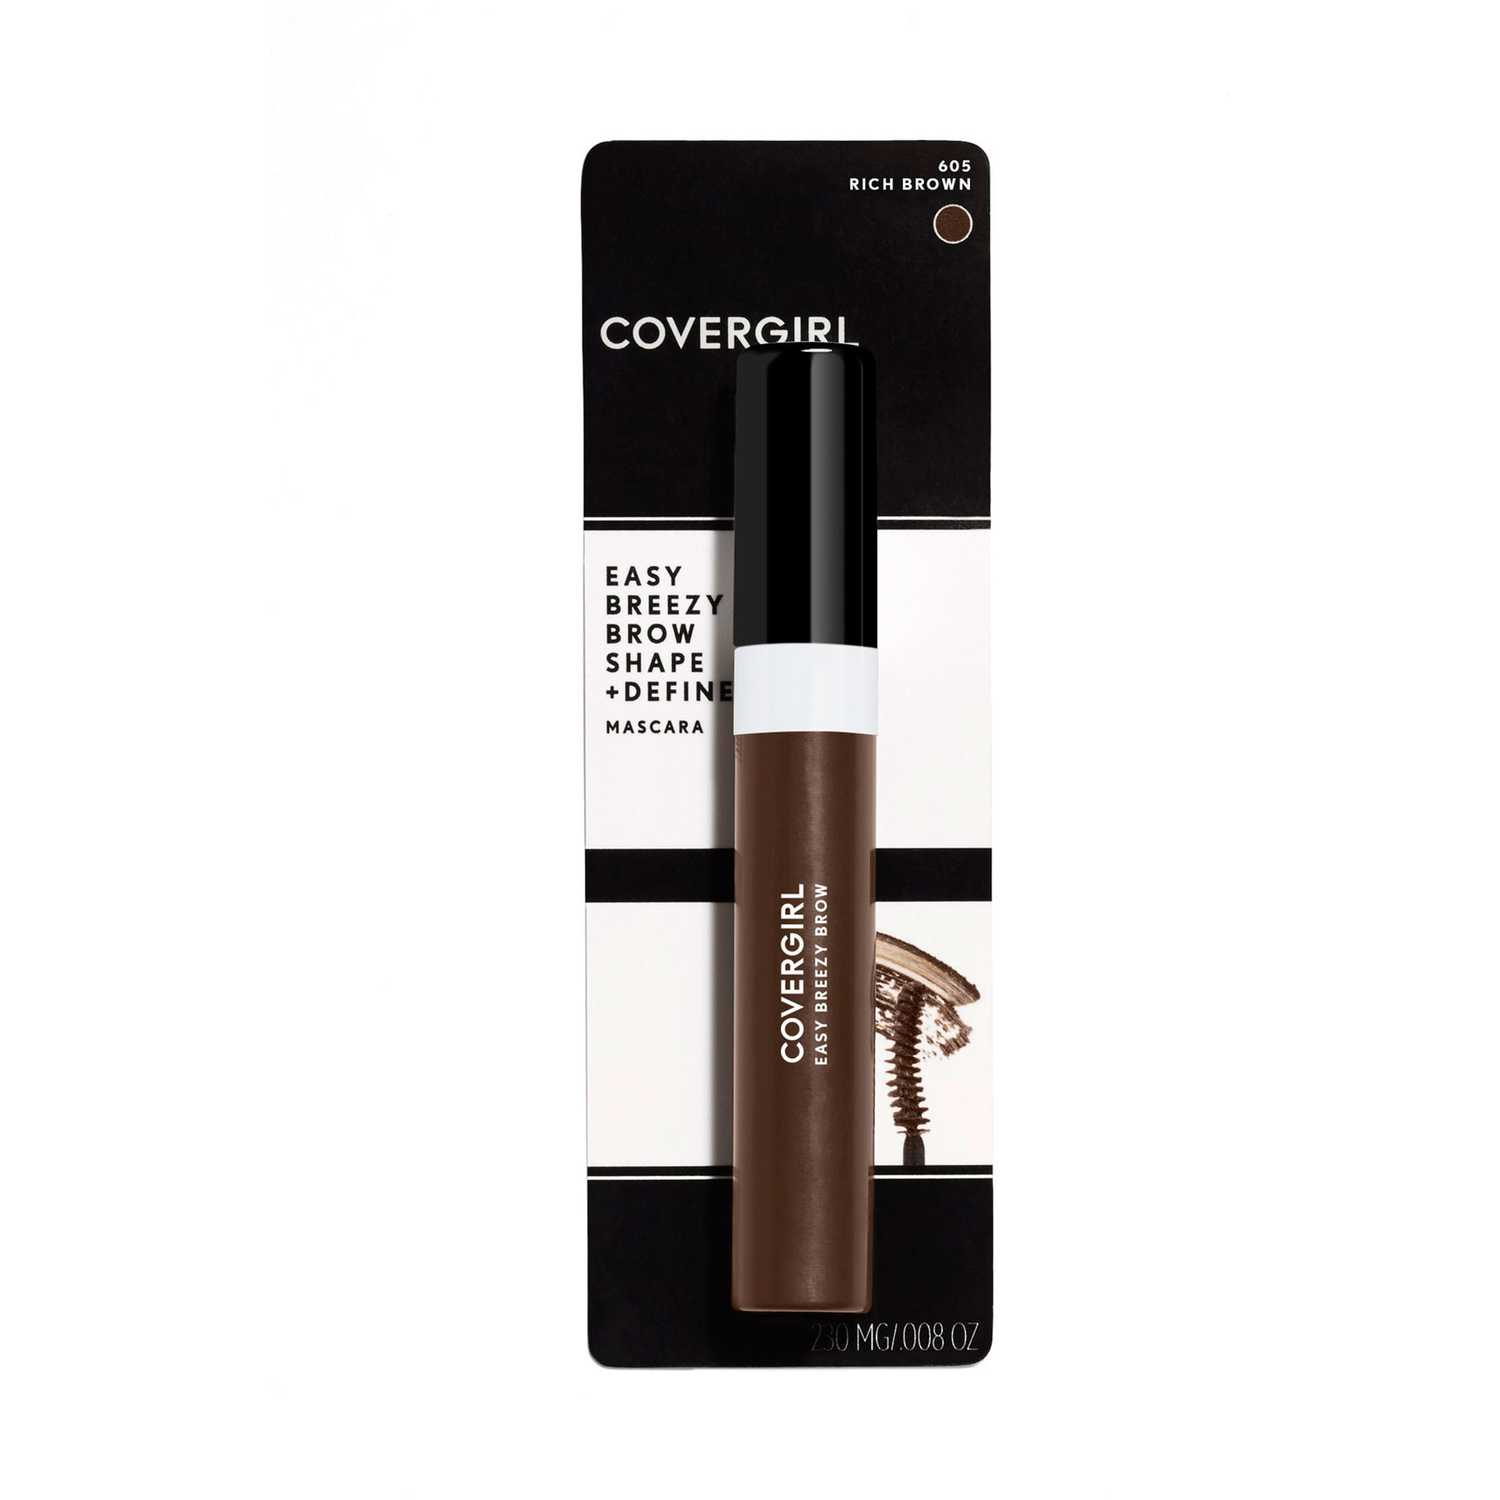 Covergirl Brow Shape&Define Brow Mascara Rich Brown Juegos de maquillaje